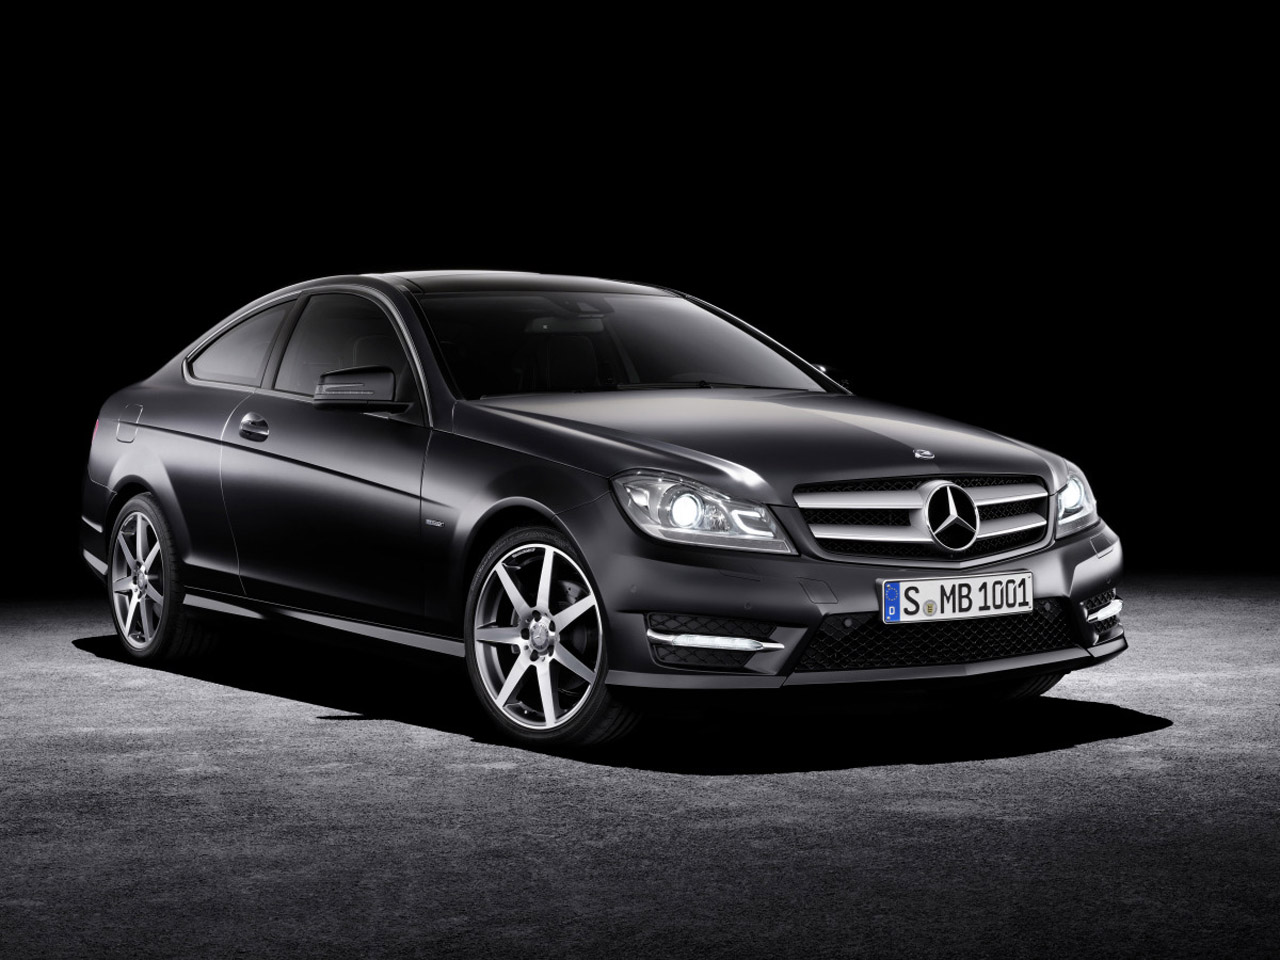 mercedes-benz c350 coupe